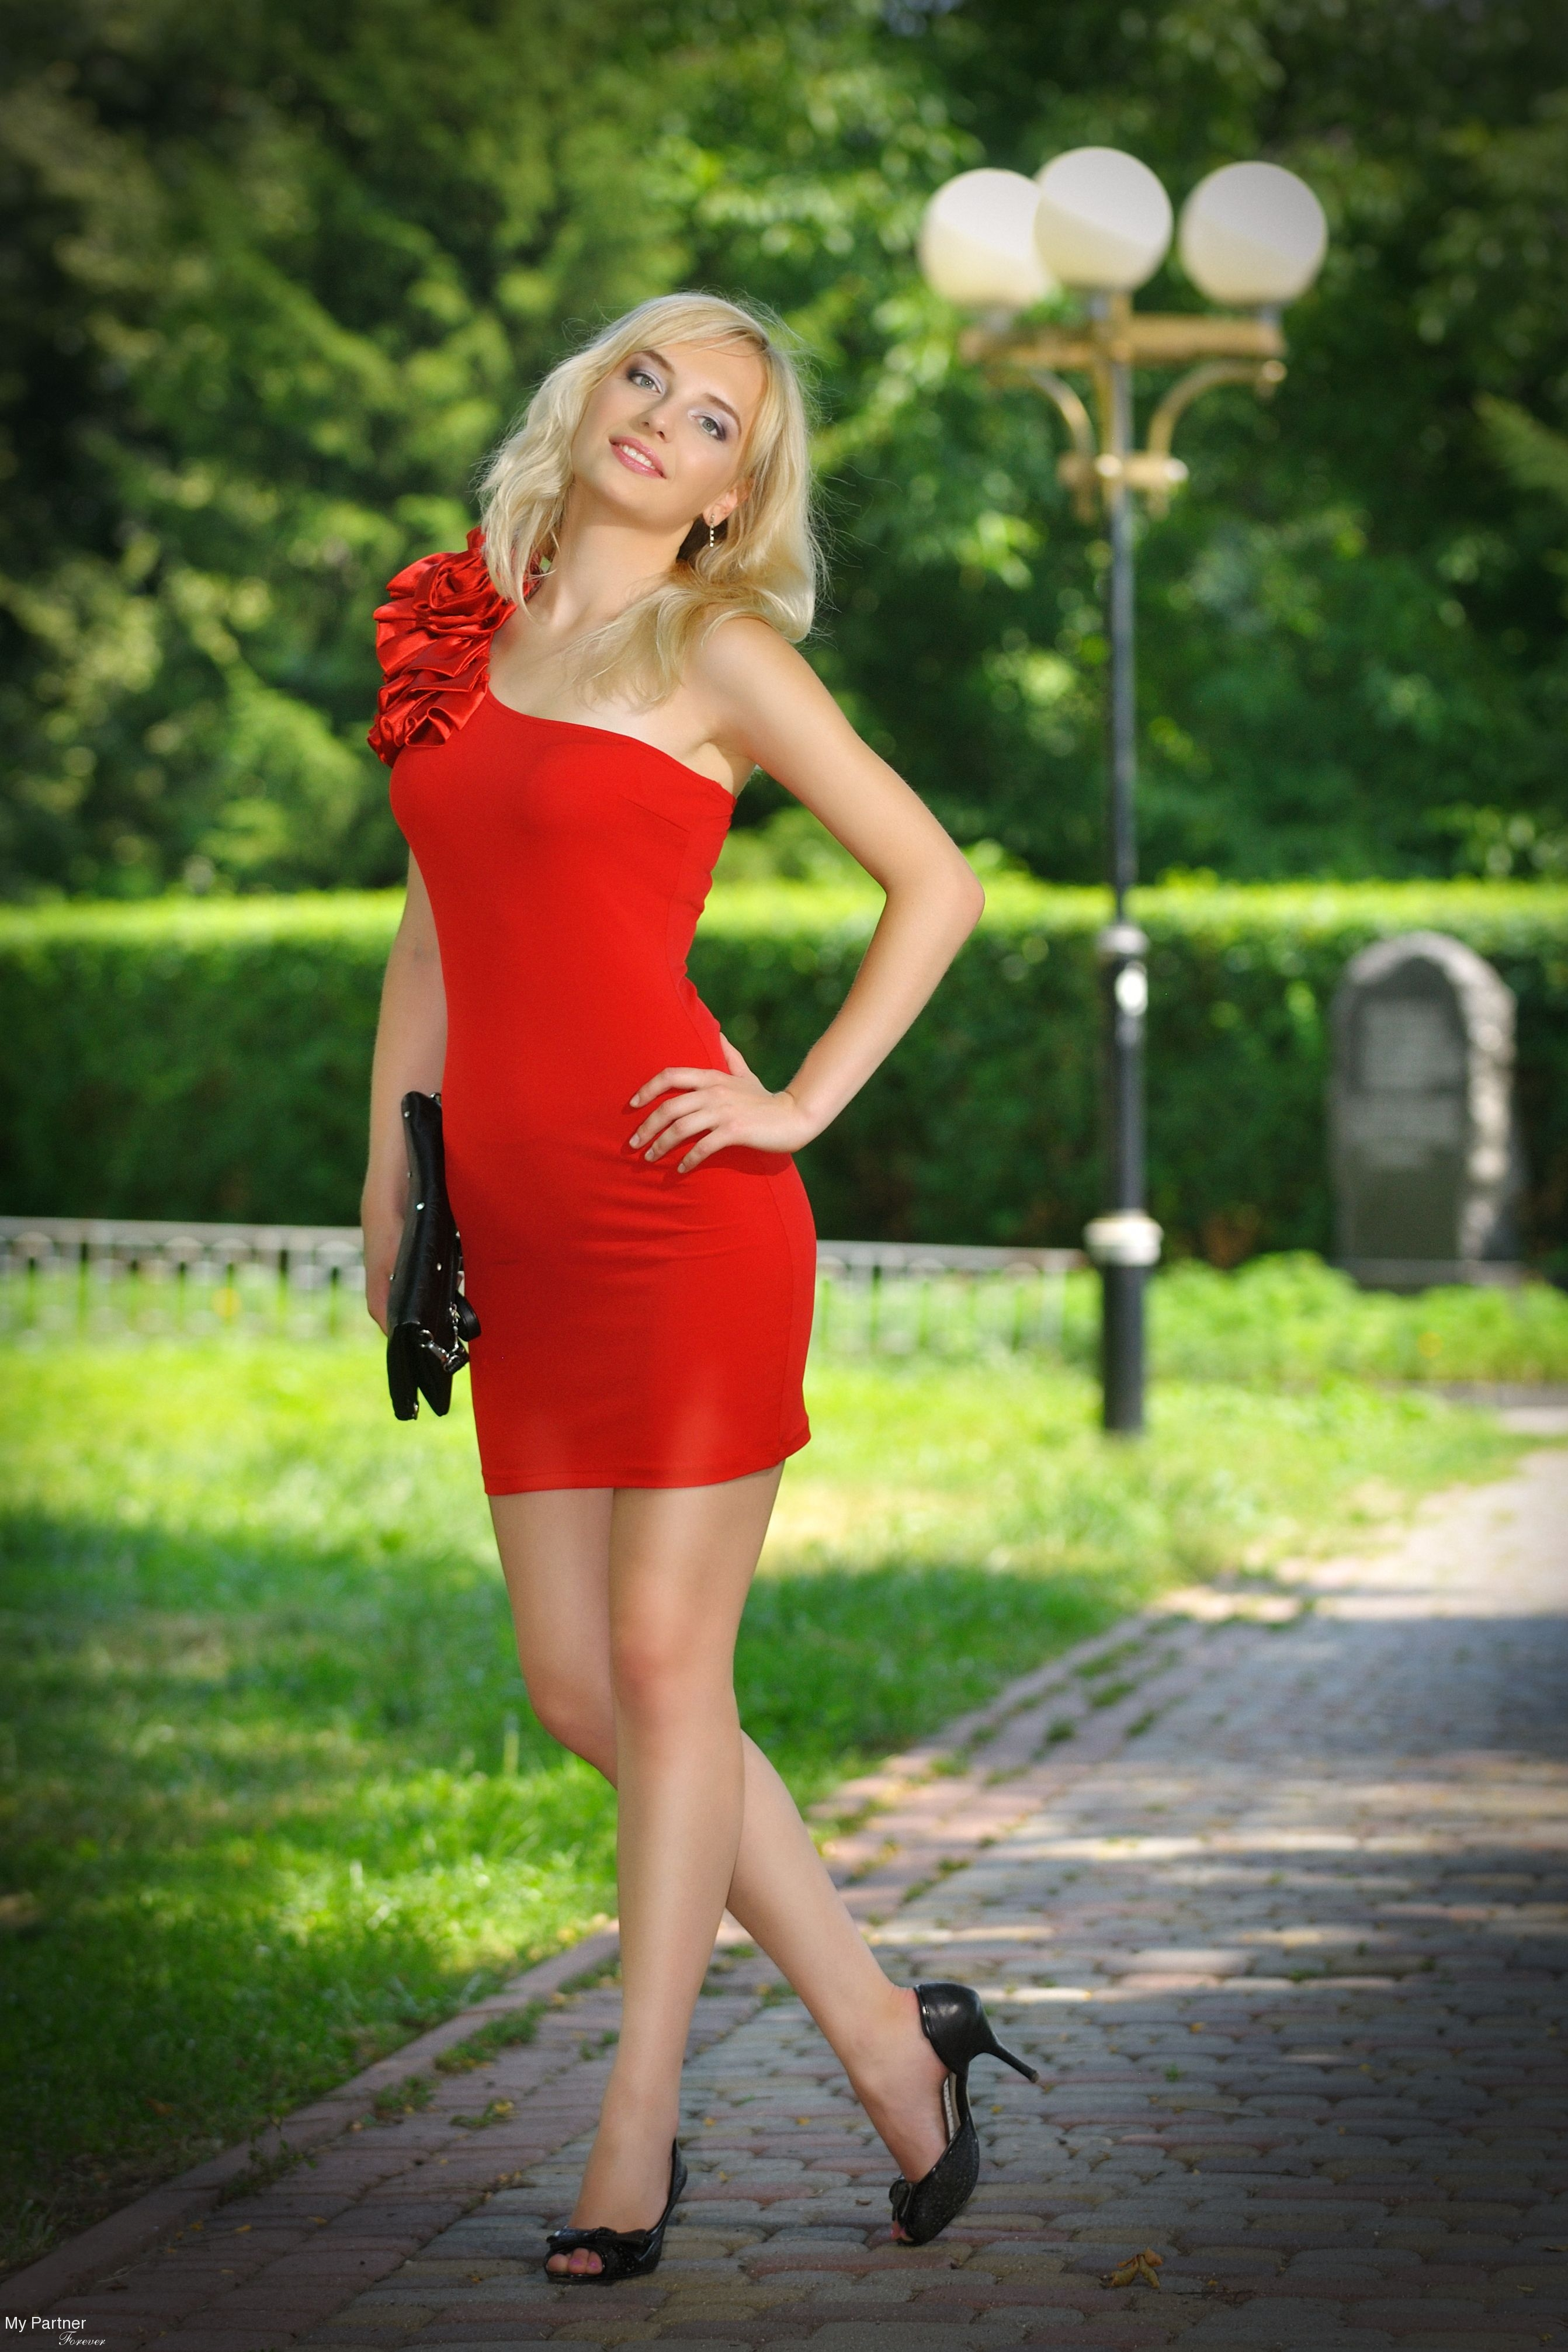 Datingsite to Meet Single Russian Women